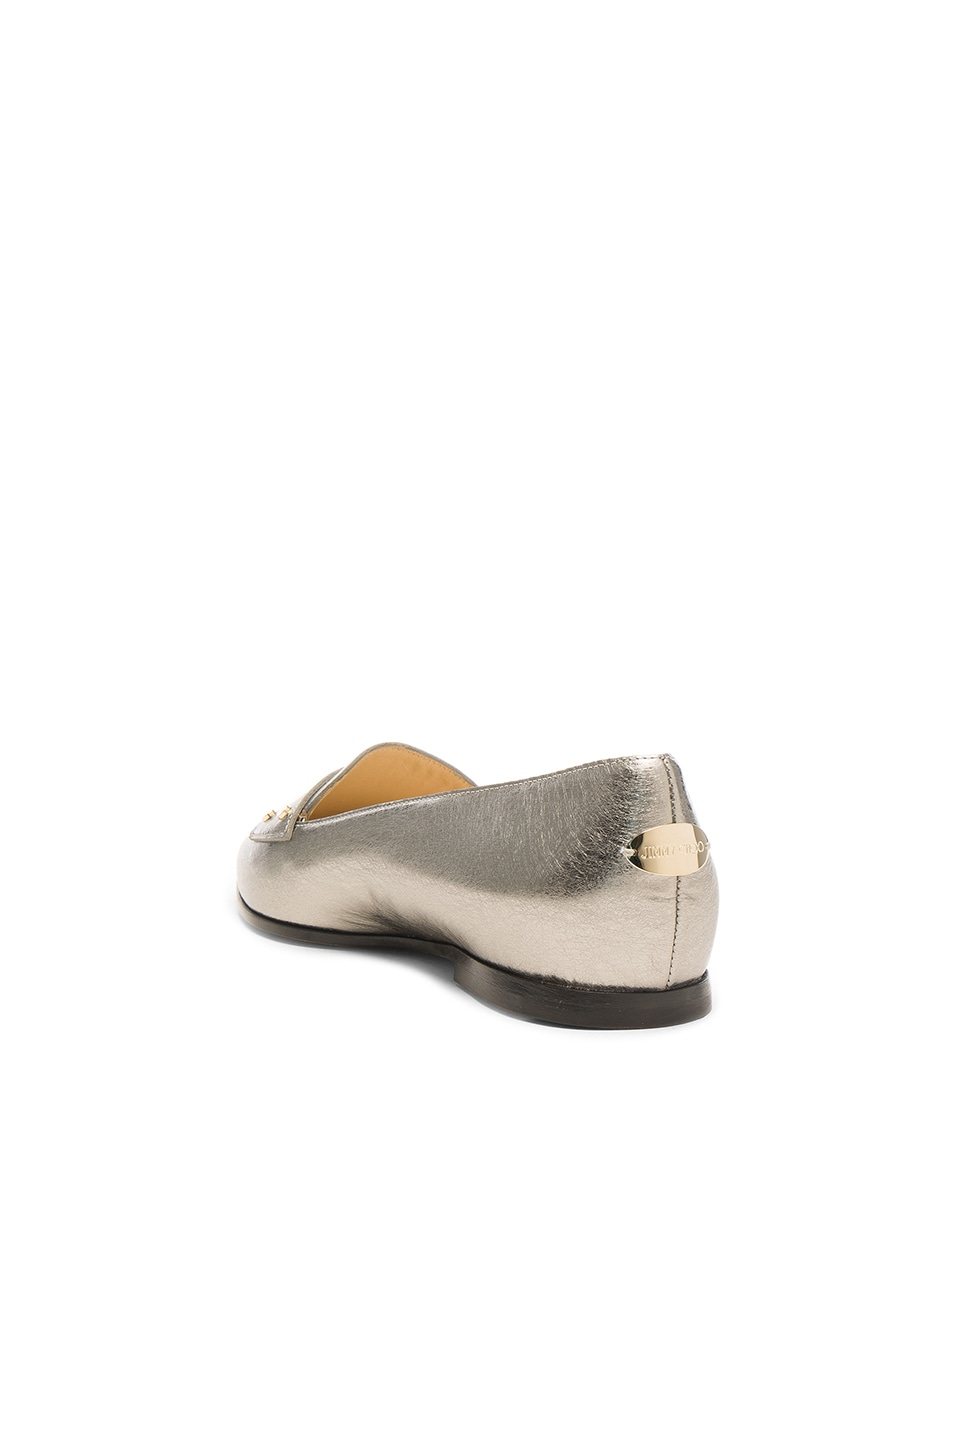 Image 3 of Jimmy Choo Leather Gia Flats in Vintage Silver